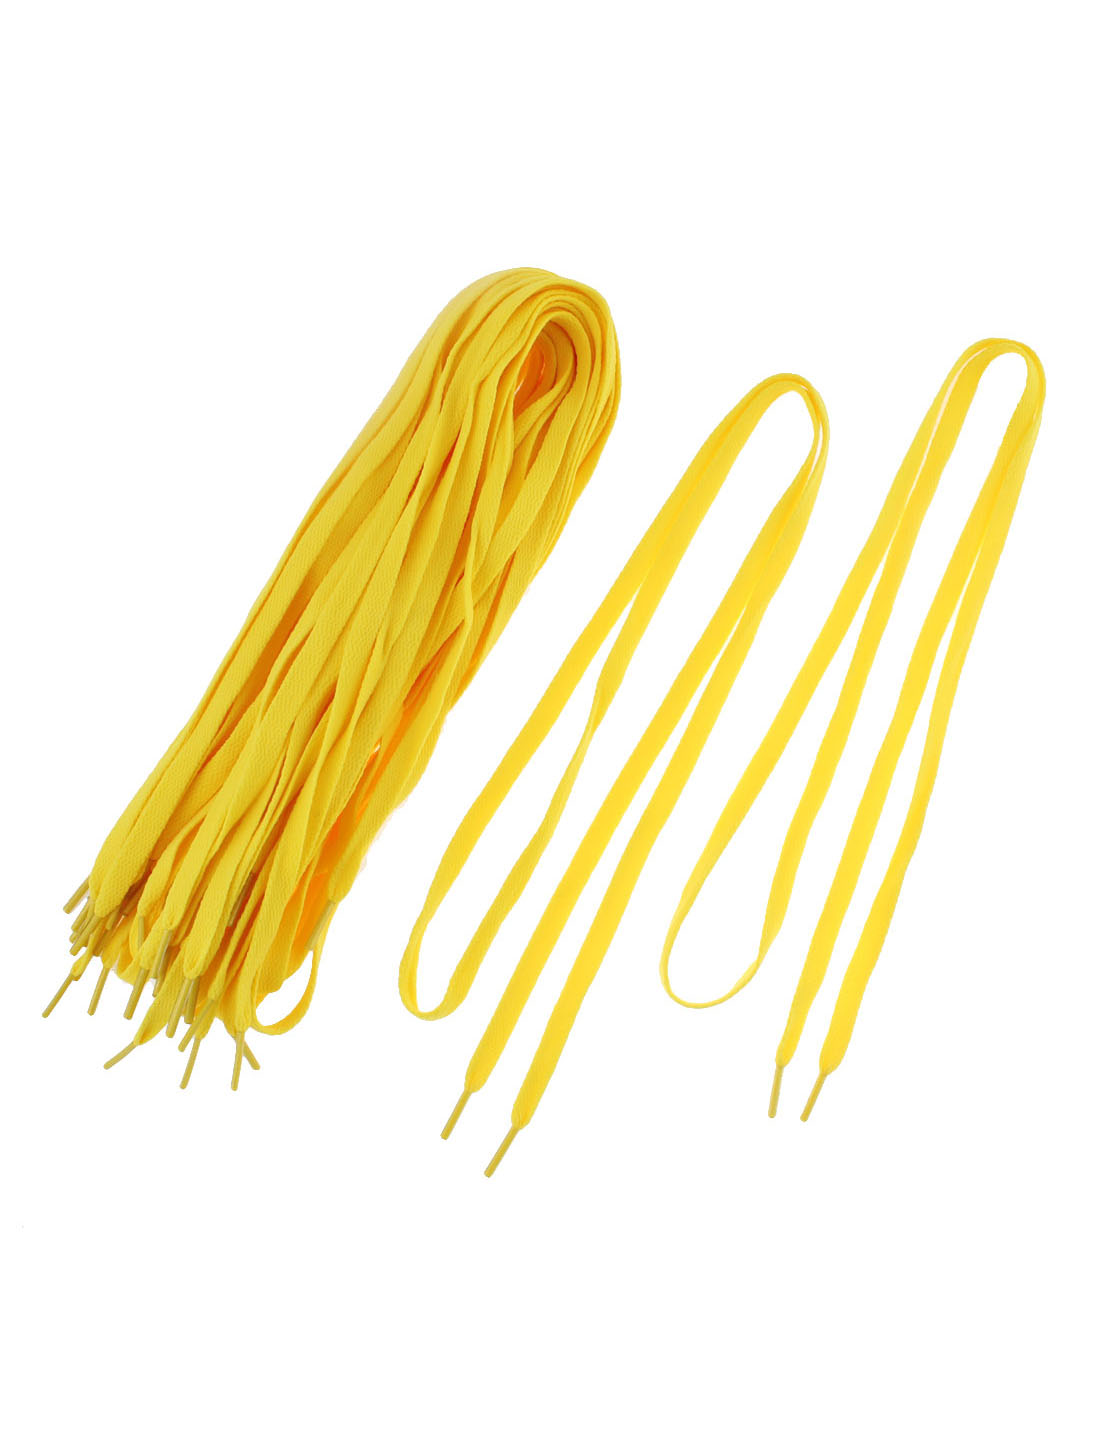 Athletic Sports Sneaker Flat Shoelace Strings Yellow 10 Pairs